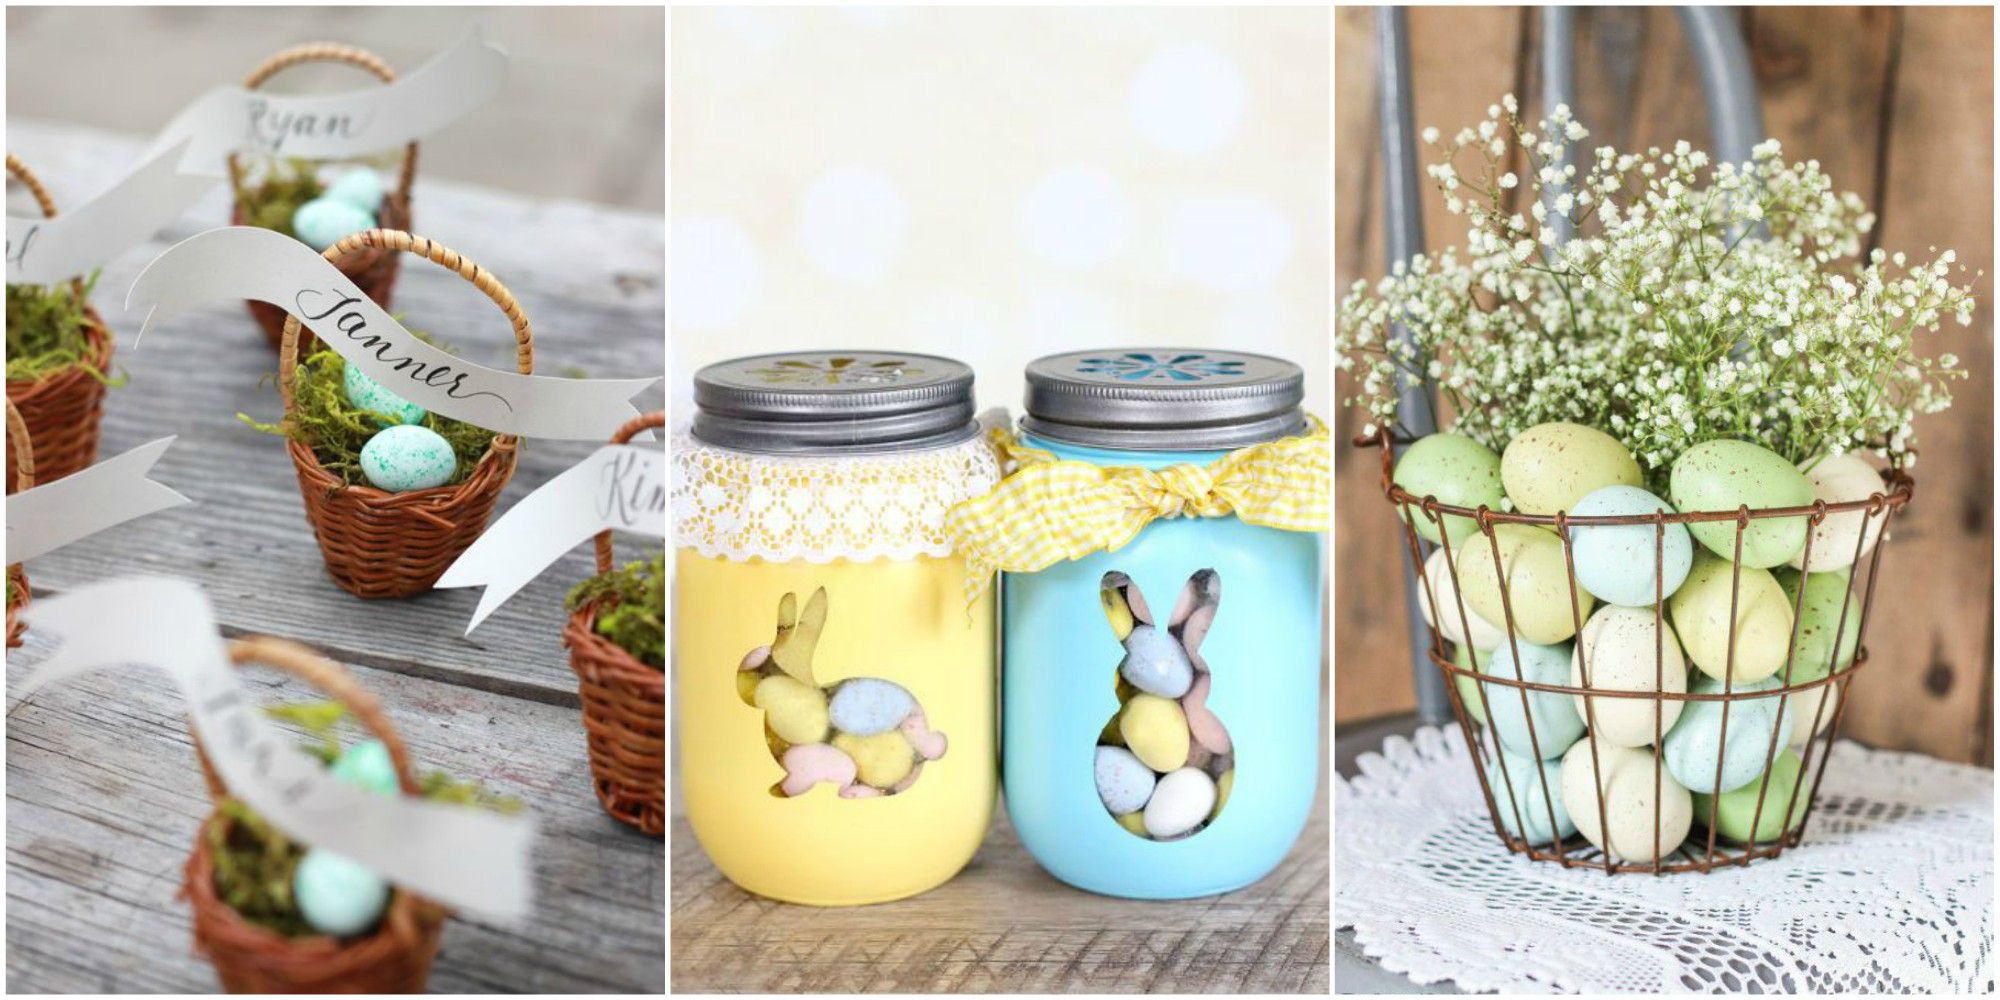 Kitchen decorating ideas table centerpieces